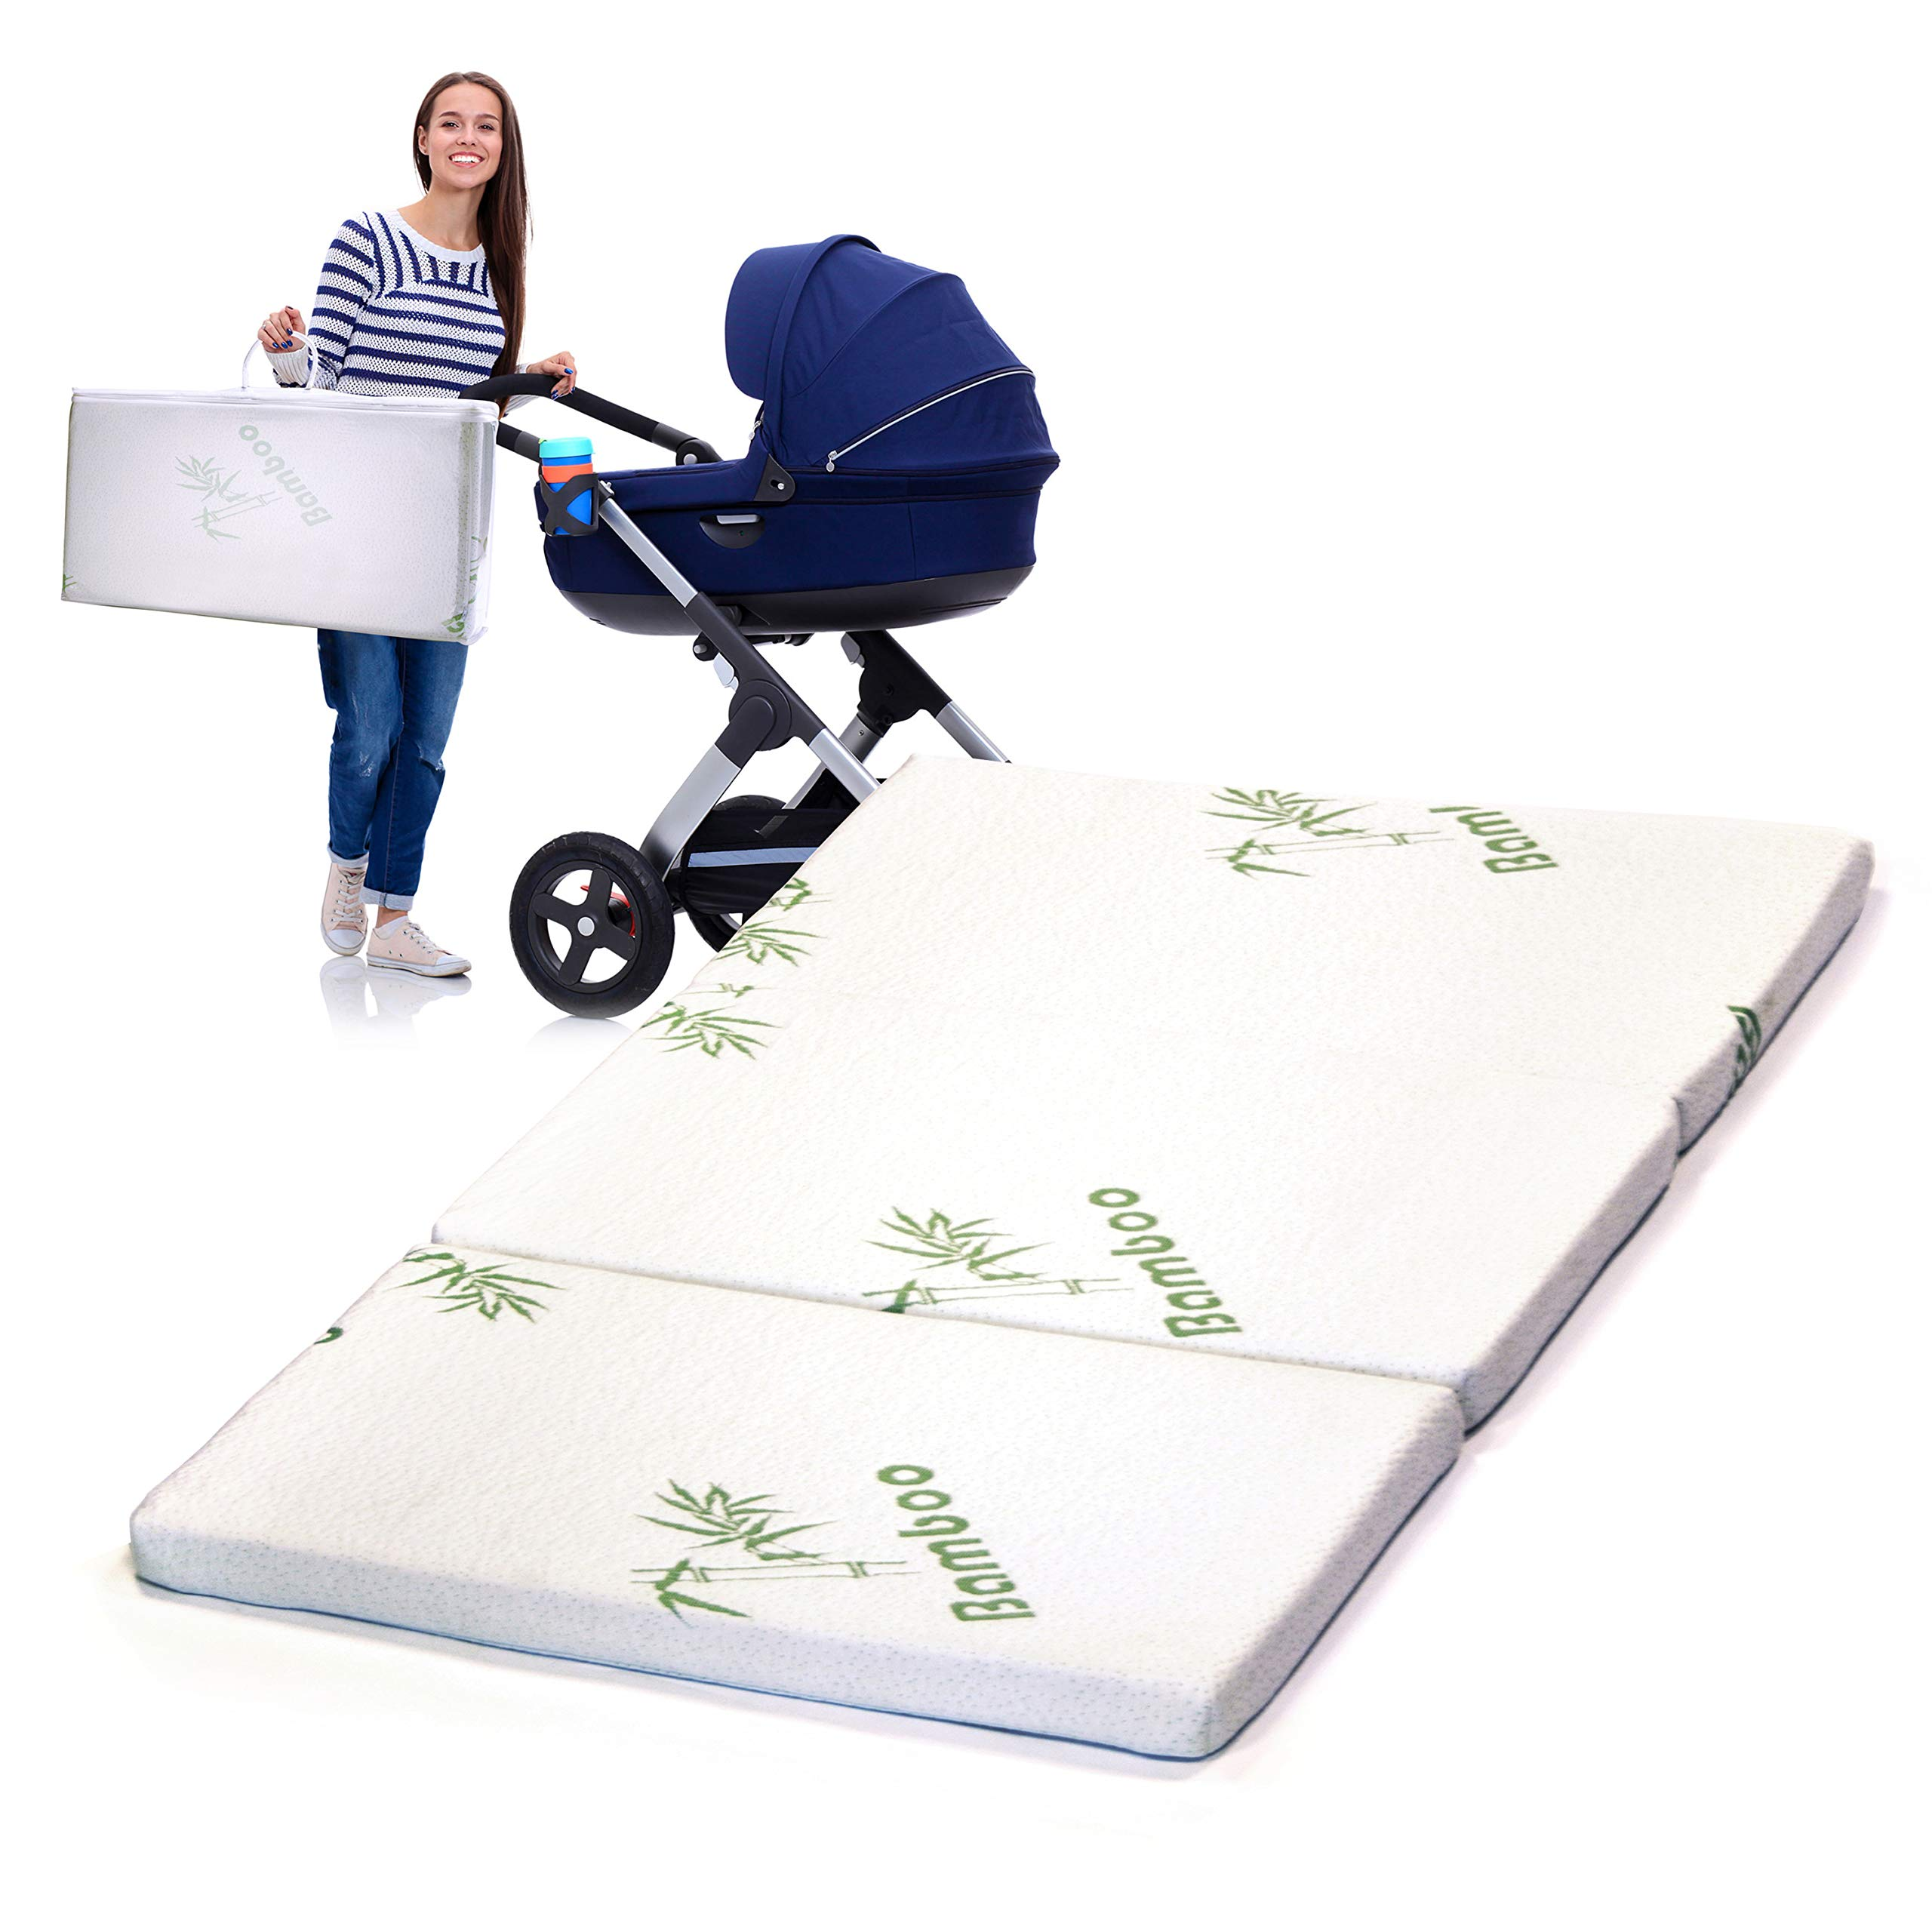 Tri-Fold Pack N' Play Bamboo Mattress - 100% Organic Waterproof Nap Pad - Collapsible Crib Cushion and Hypo-Allergenic Soft Play Mat - Machine Washable Play Pad Play Pen Mattresses, 38 x 25.5 x 1.5'' by YESINDEED